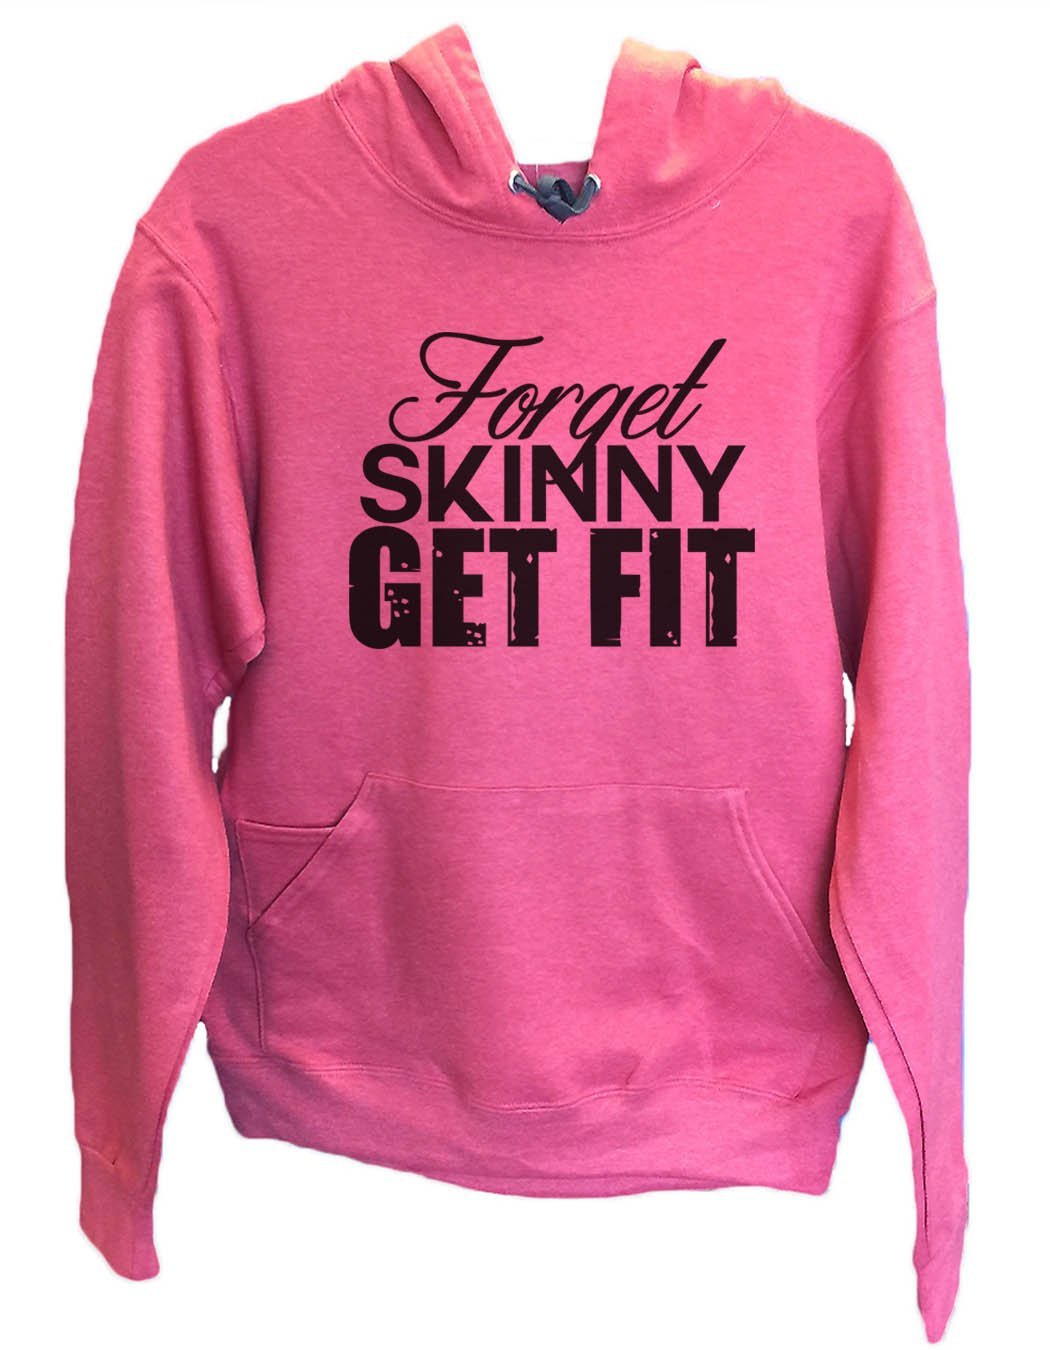 UNISEX HOODIE - Forget Skinny Get Fit - FUNNY MENS AND WOMENS HOODED SWEATSHIRTS - 2130 Funny Shirt